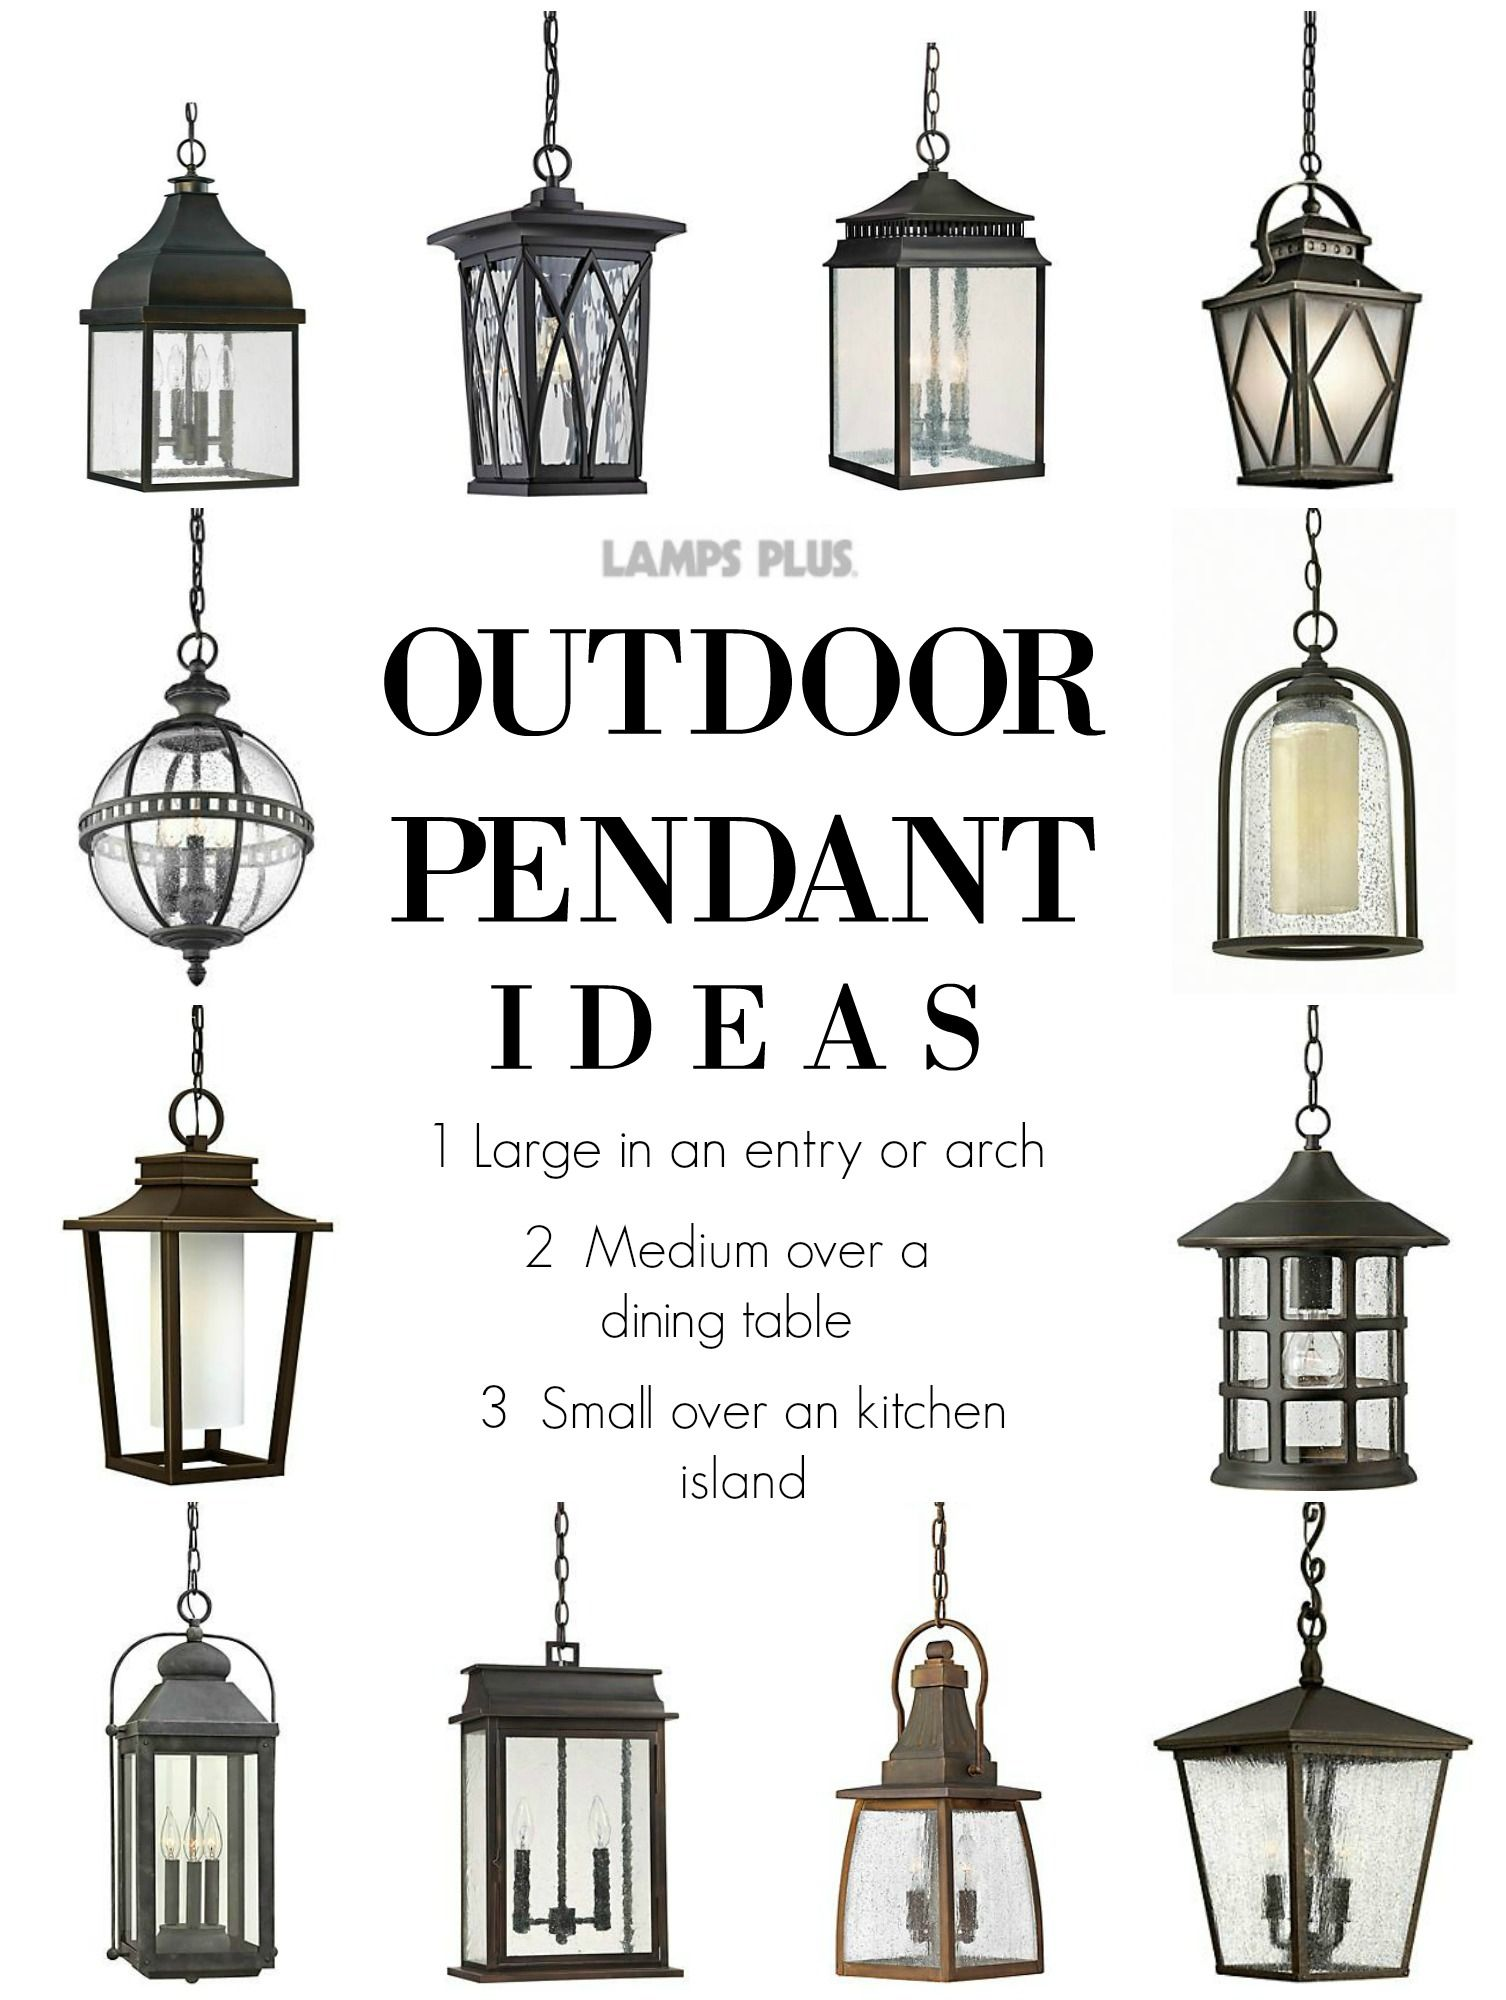 Outdoor Lighting Outdoor Pendant Ideas From Lampsplus